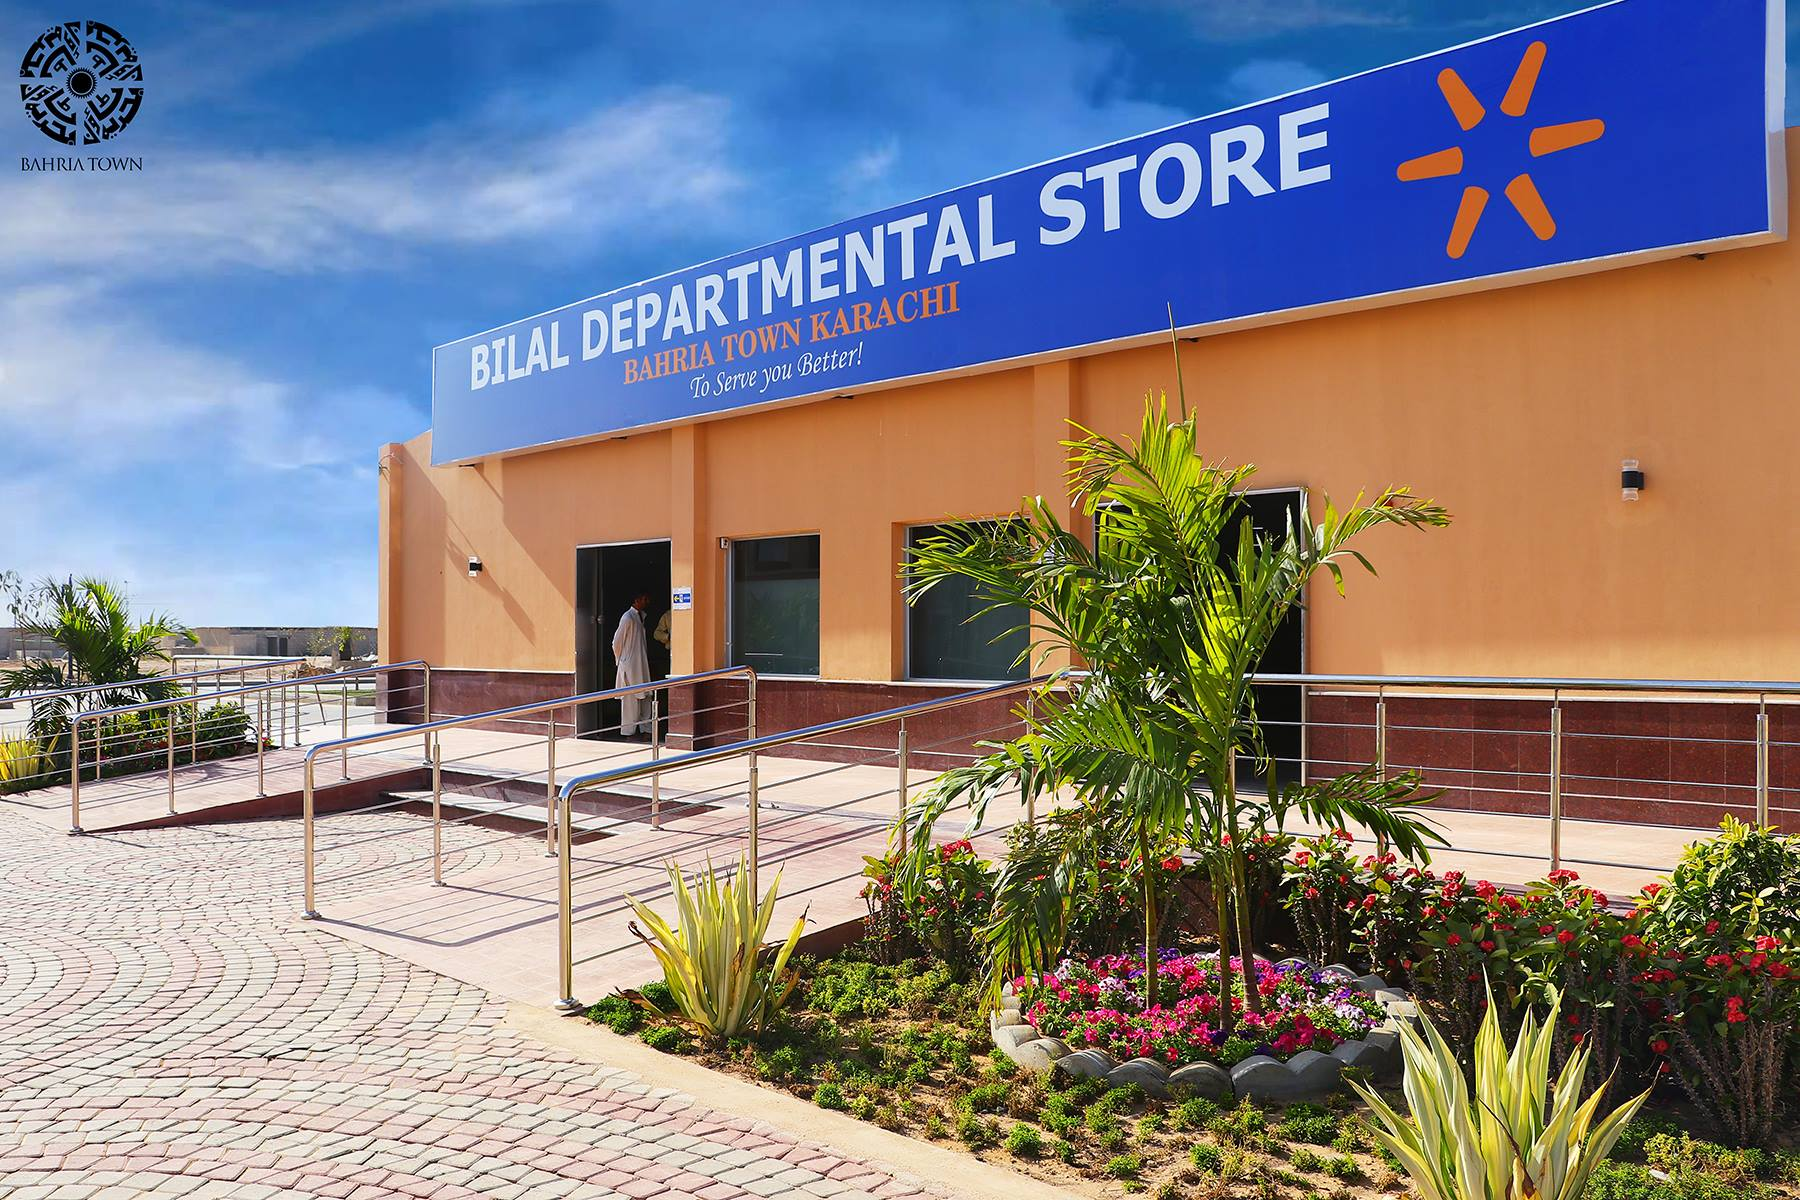 Bilal Departmental Store Opens at Bahria Town Karachi 01